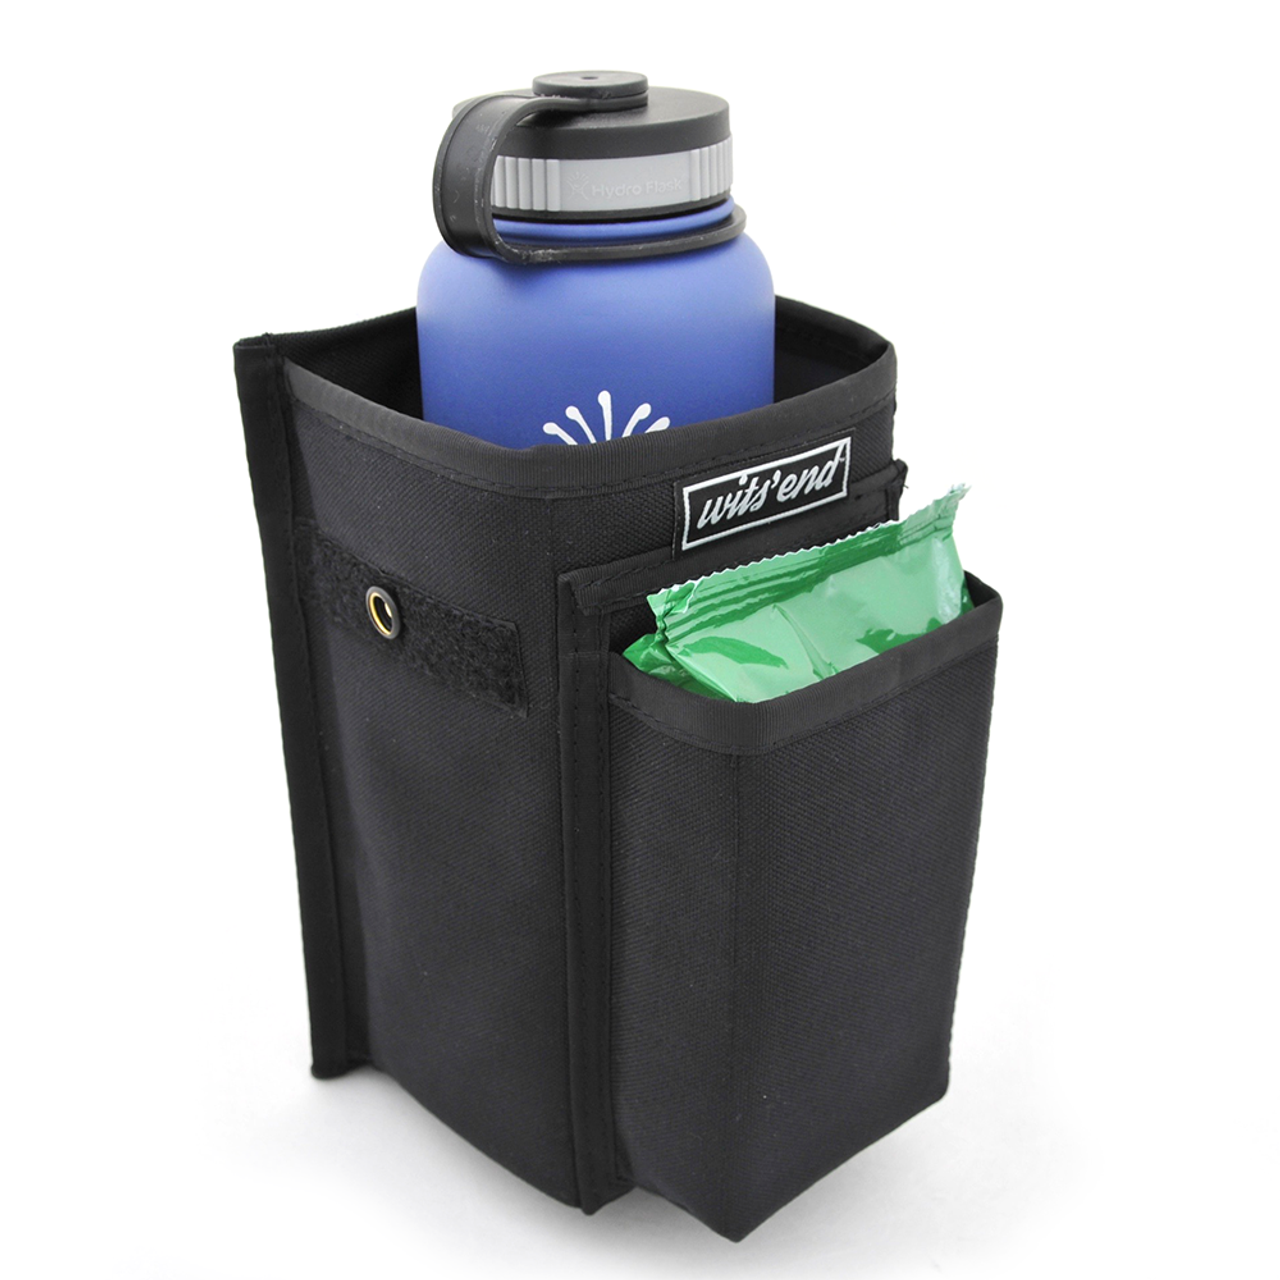 Refuse Containment System- Main Unit (RCS-1) Front pocket designed to hold a small pack of wet wipes. Main bin large enough for a large Hydroflask